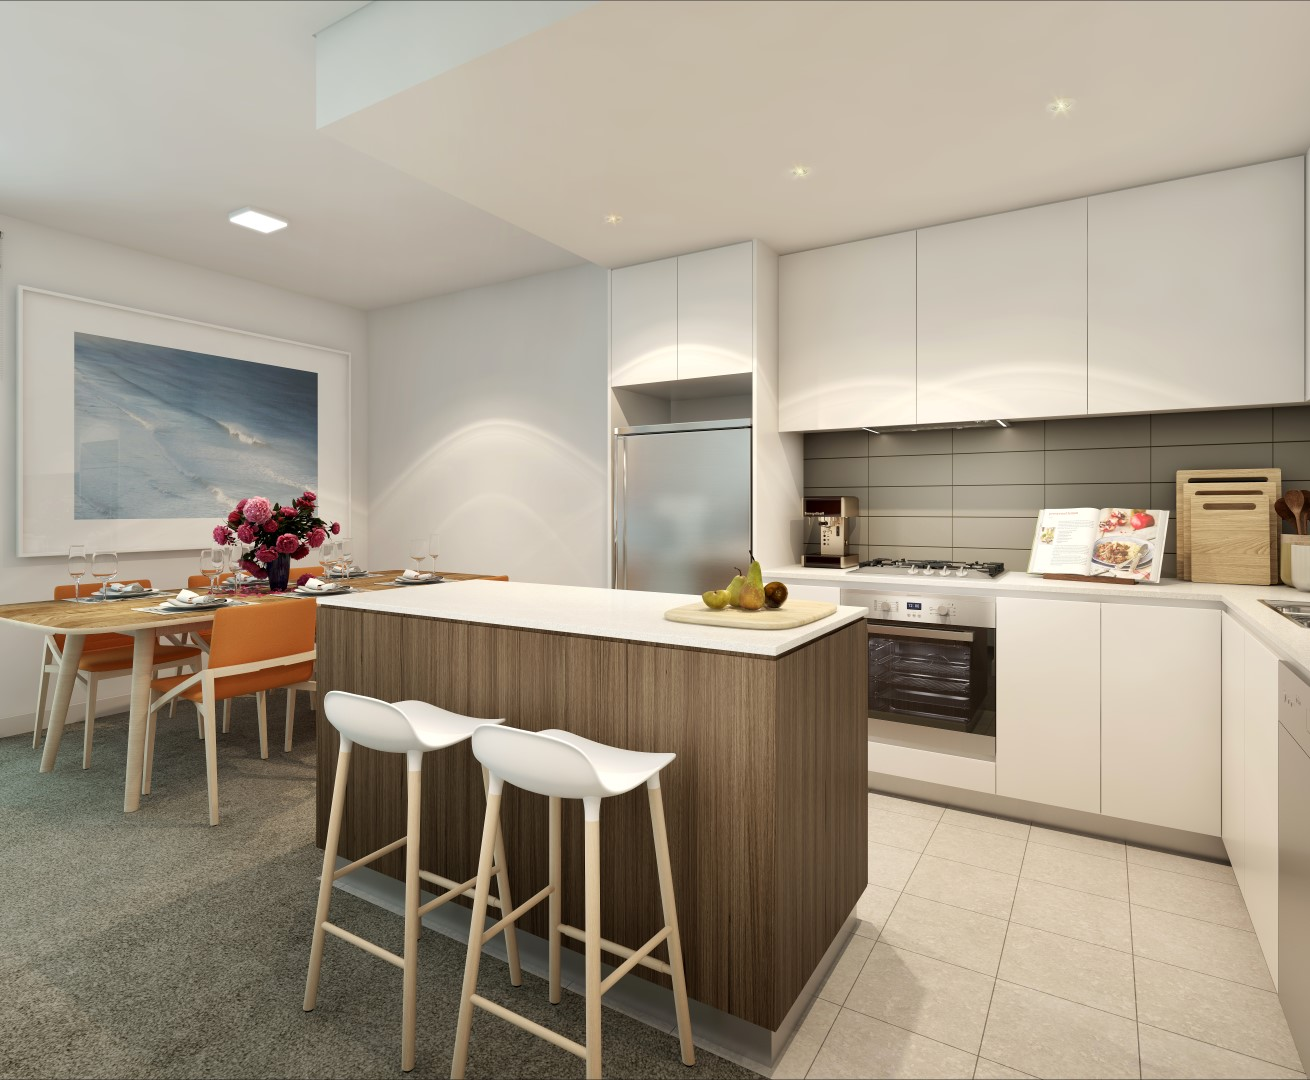 100 castlereagh street liverpool nsw 2170 off the plan for Kitchens liverpool nsw